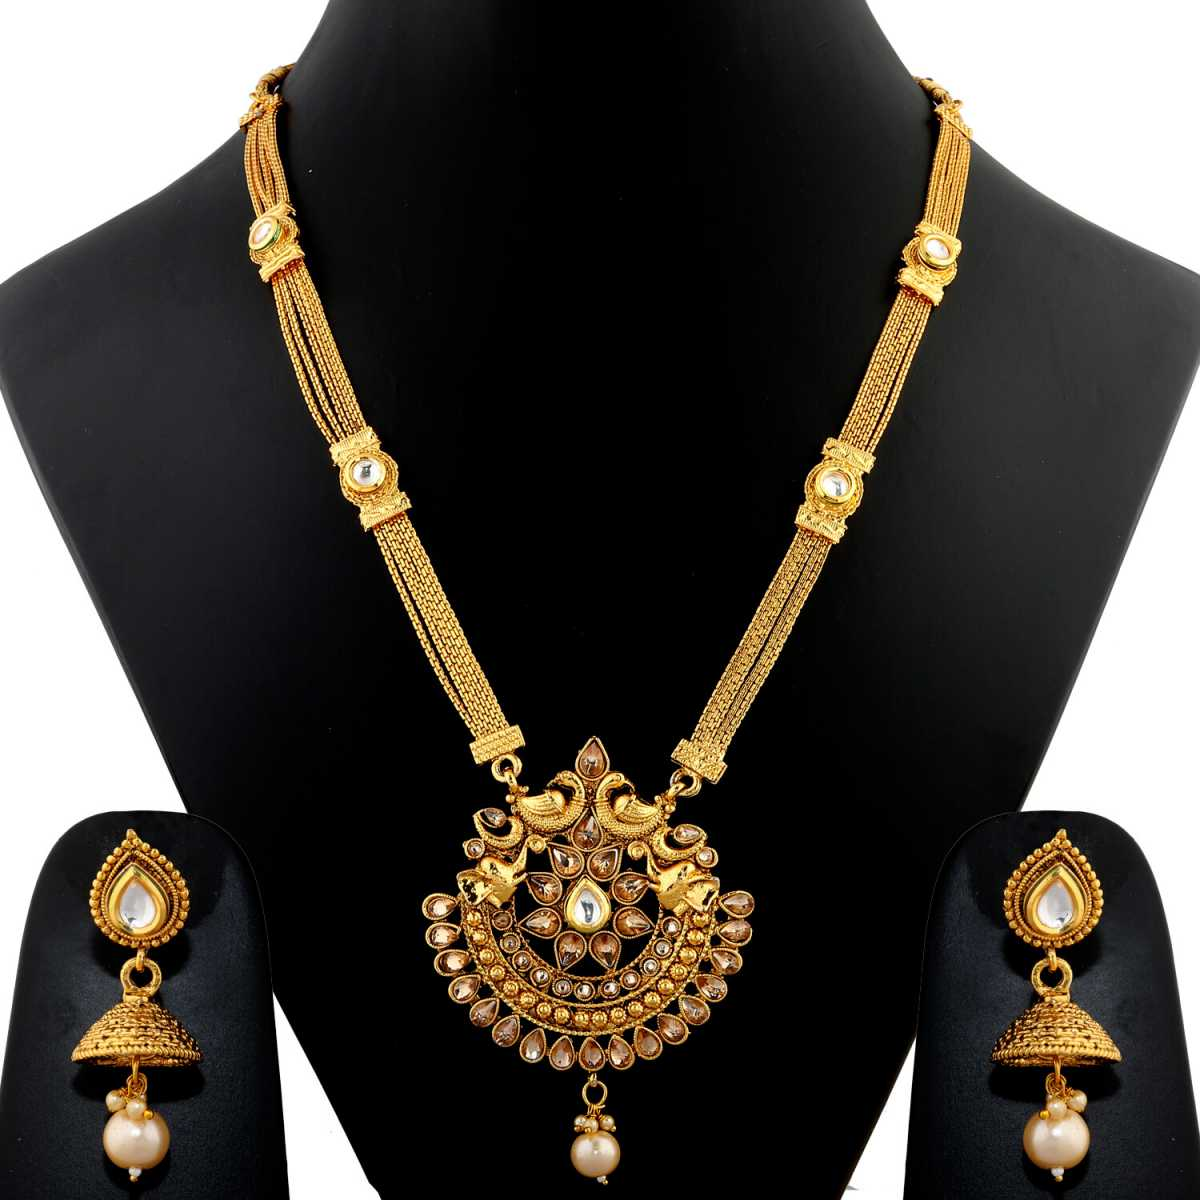 Silver Shine Exclusive Traditional  Gold Plated Antique Peacock Design & Multi Pearls Long Necklace Set  Jewellery  For Women And Girls